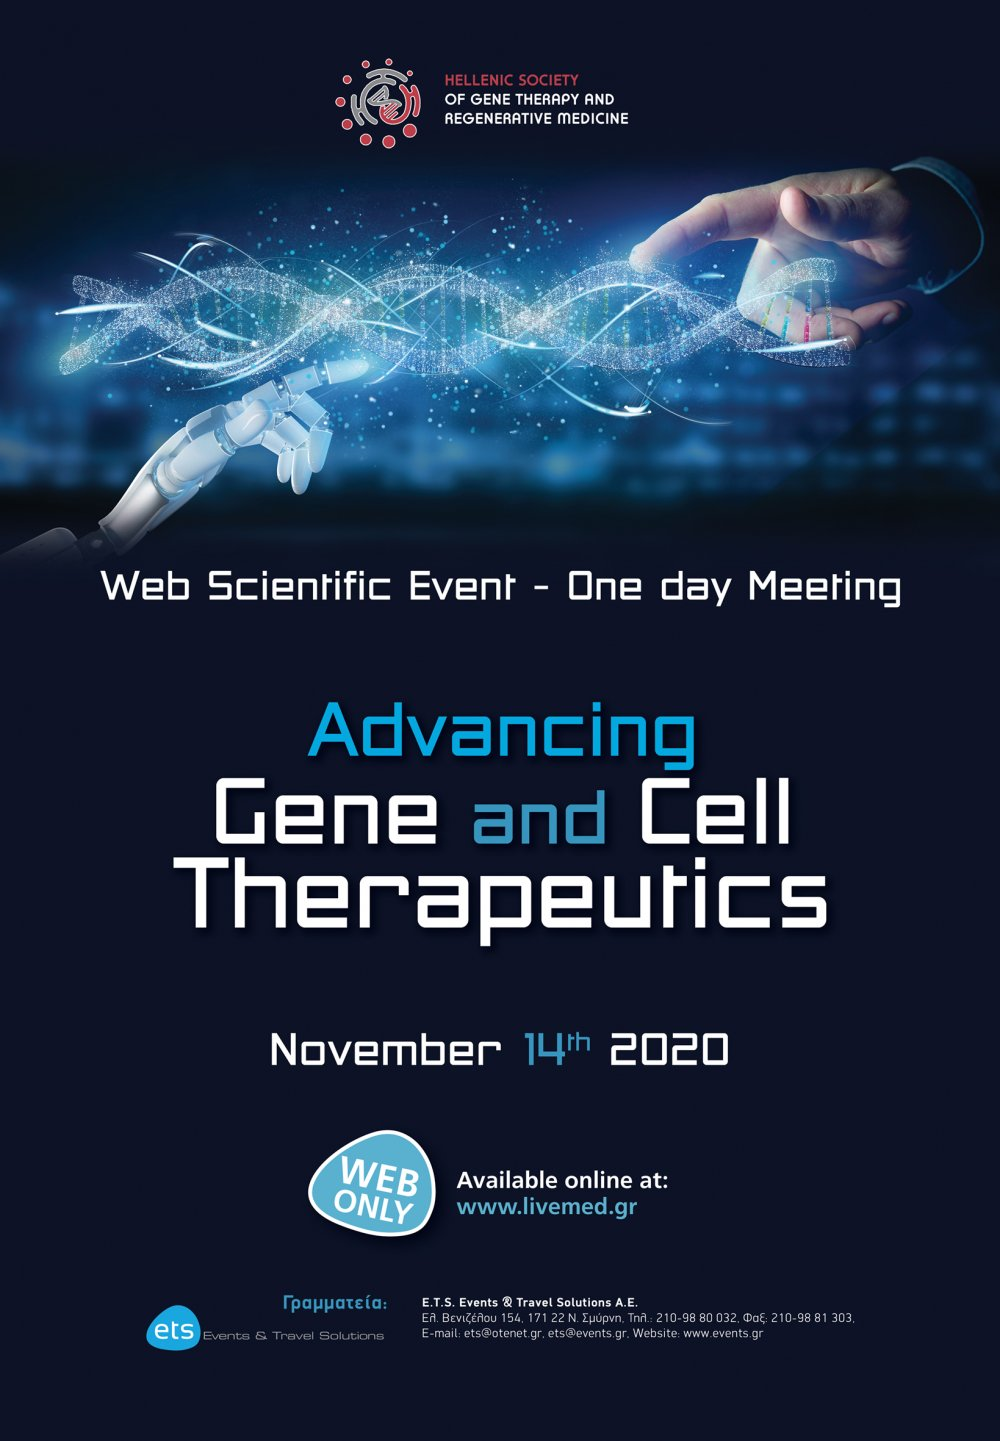 Final Programme - Advancing Gene and Cell Therapeutics / Web Scientific Event - One Day Meeting